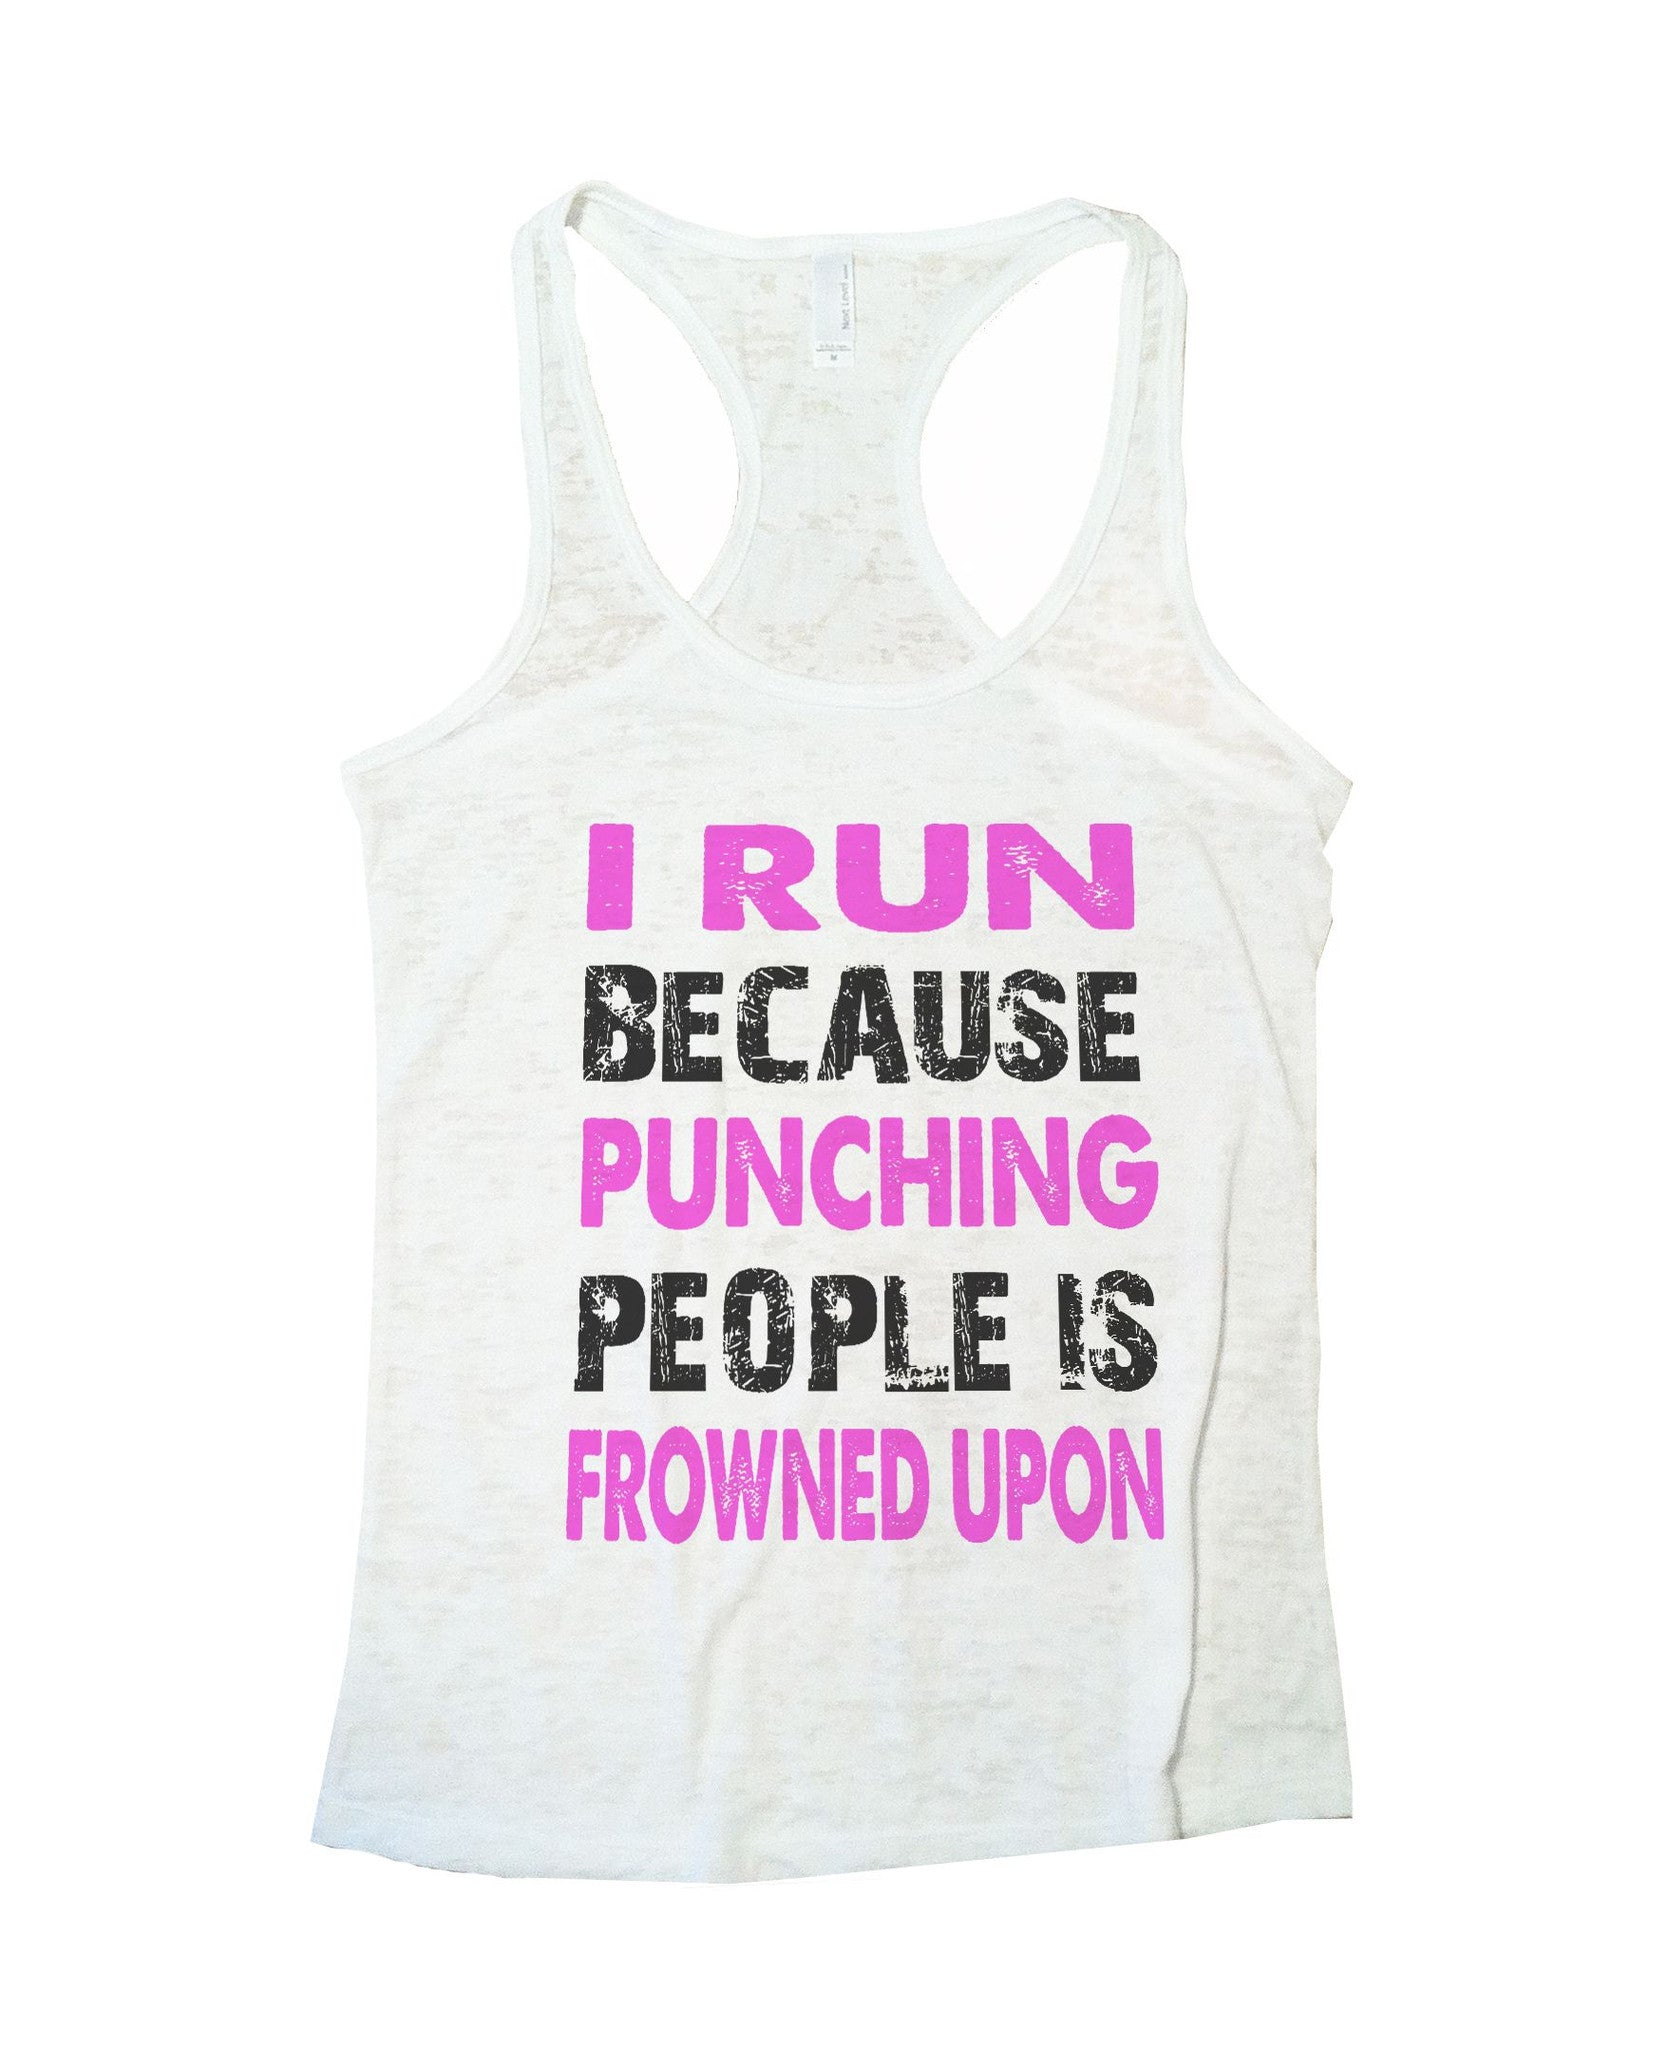 I Run Because Punching People Is Frowned Upon Burnout Tank Top By BurnoutTankTops.com - 708 - Funny Shirts Tank Tops Burnouts and Triblends  - 5